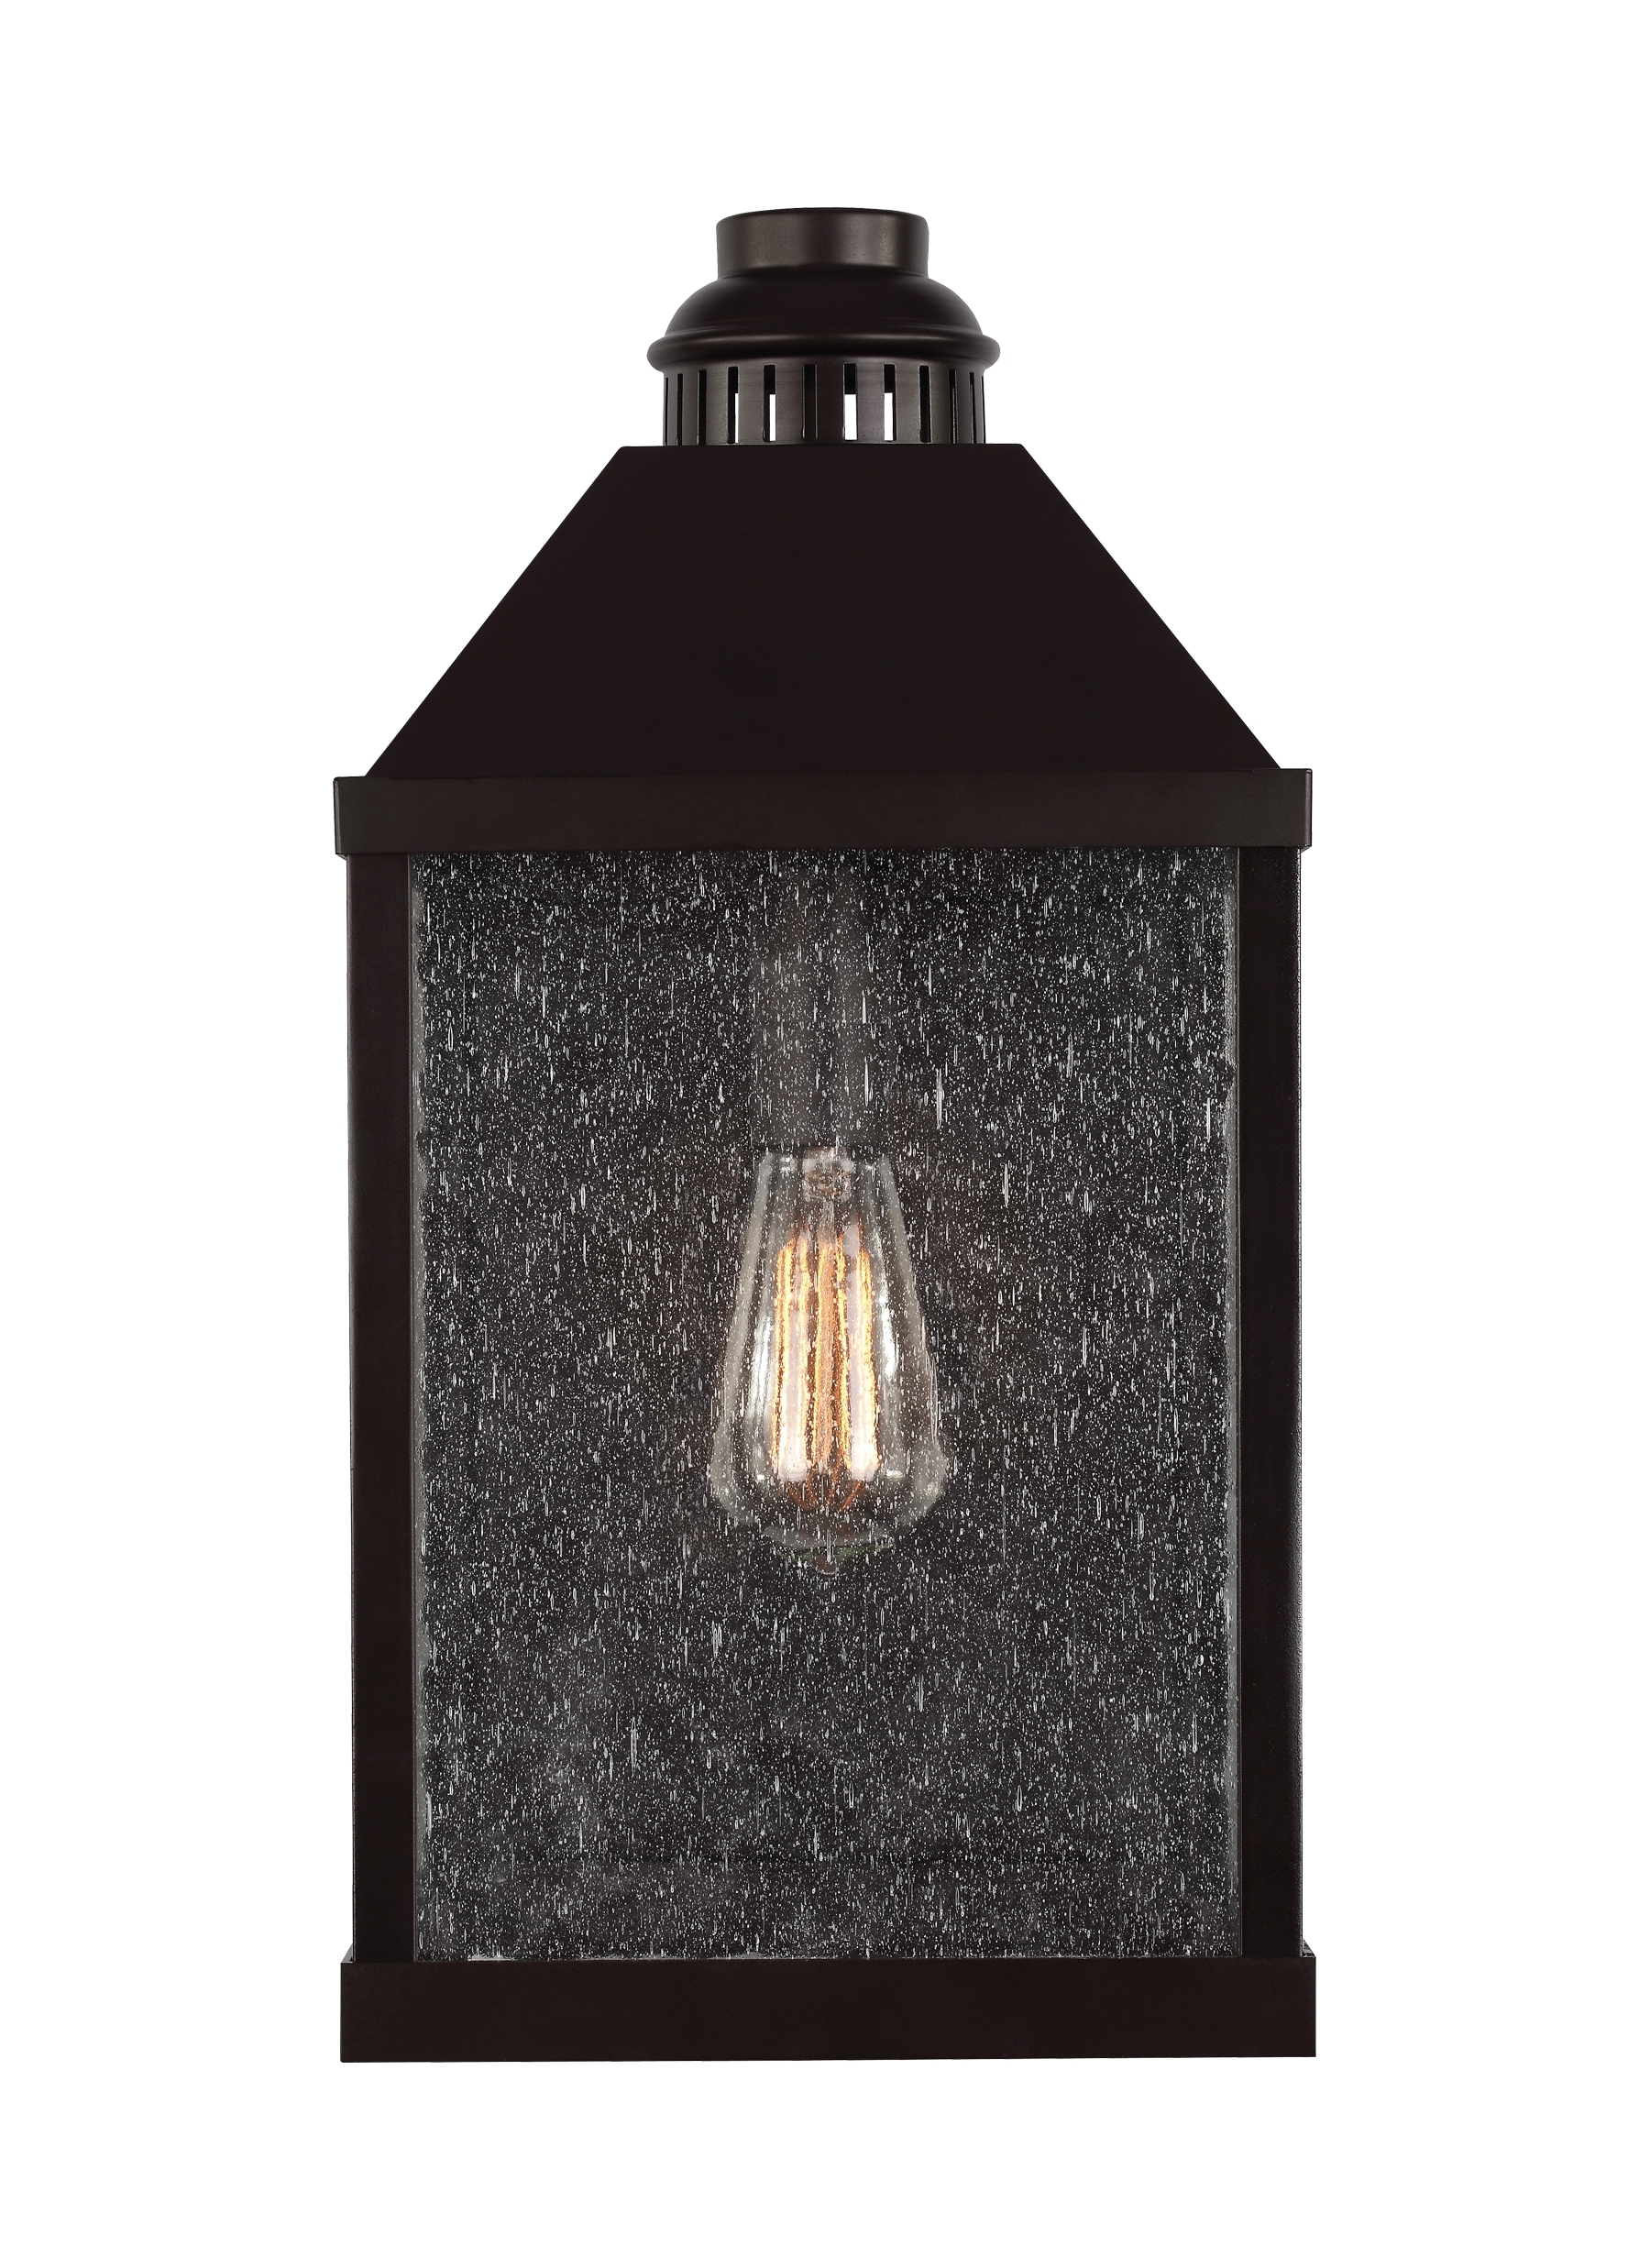 Light Fixtures Rustic Wall Sconce Fixture Lodge Style Sconces In Widely Used Rustic Outdoor Electric Lanterns (View 5 of 20)